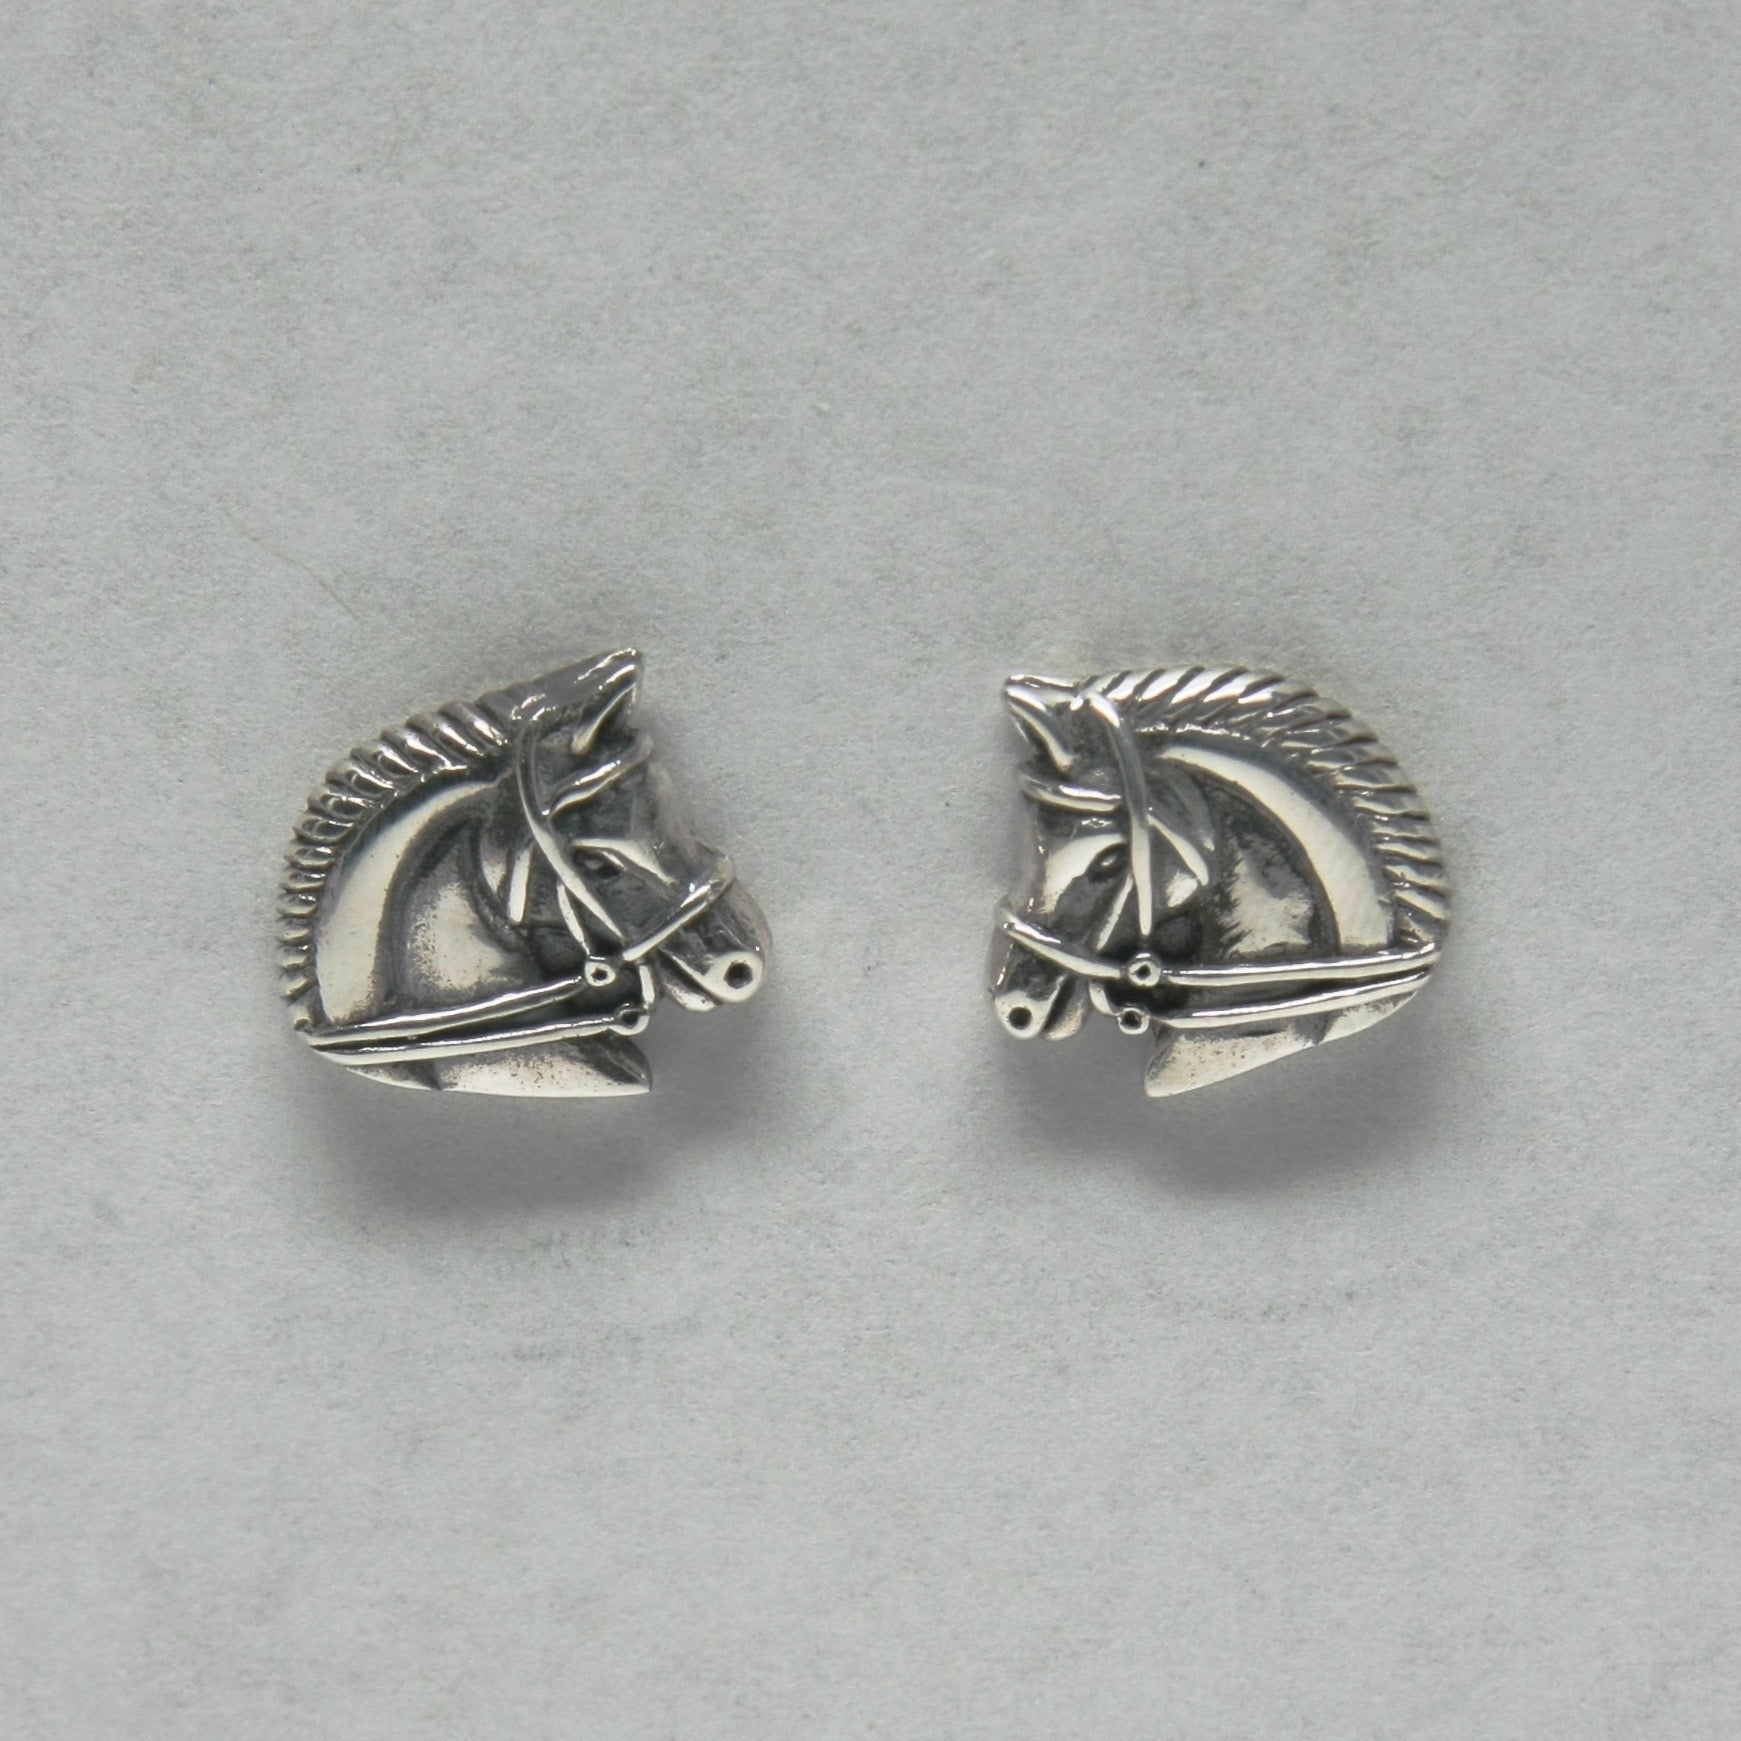 Equestrian dressage horse head earrings